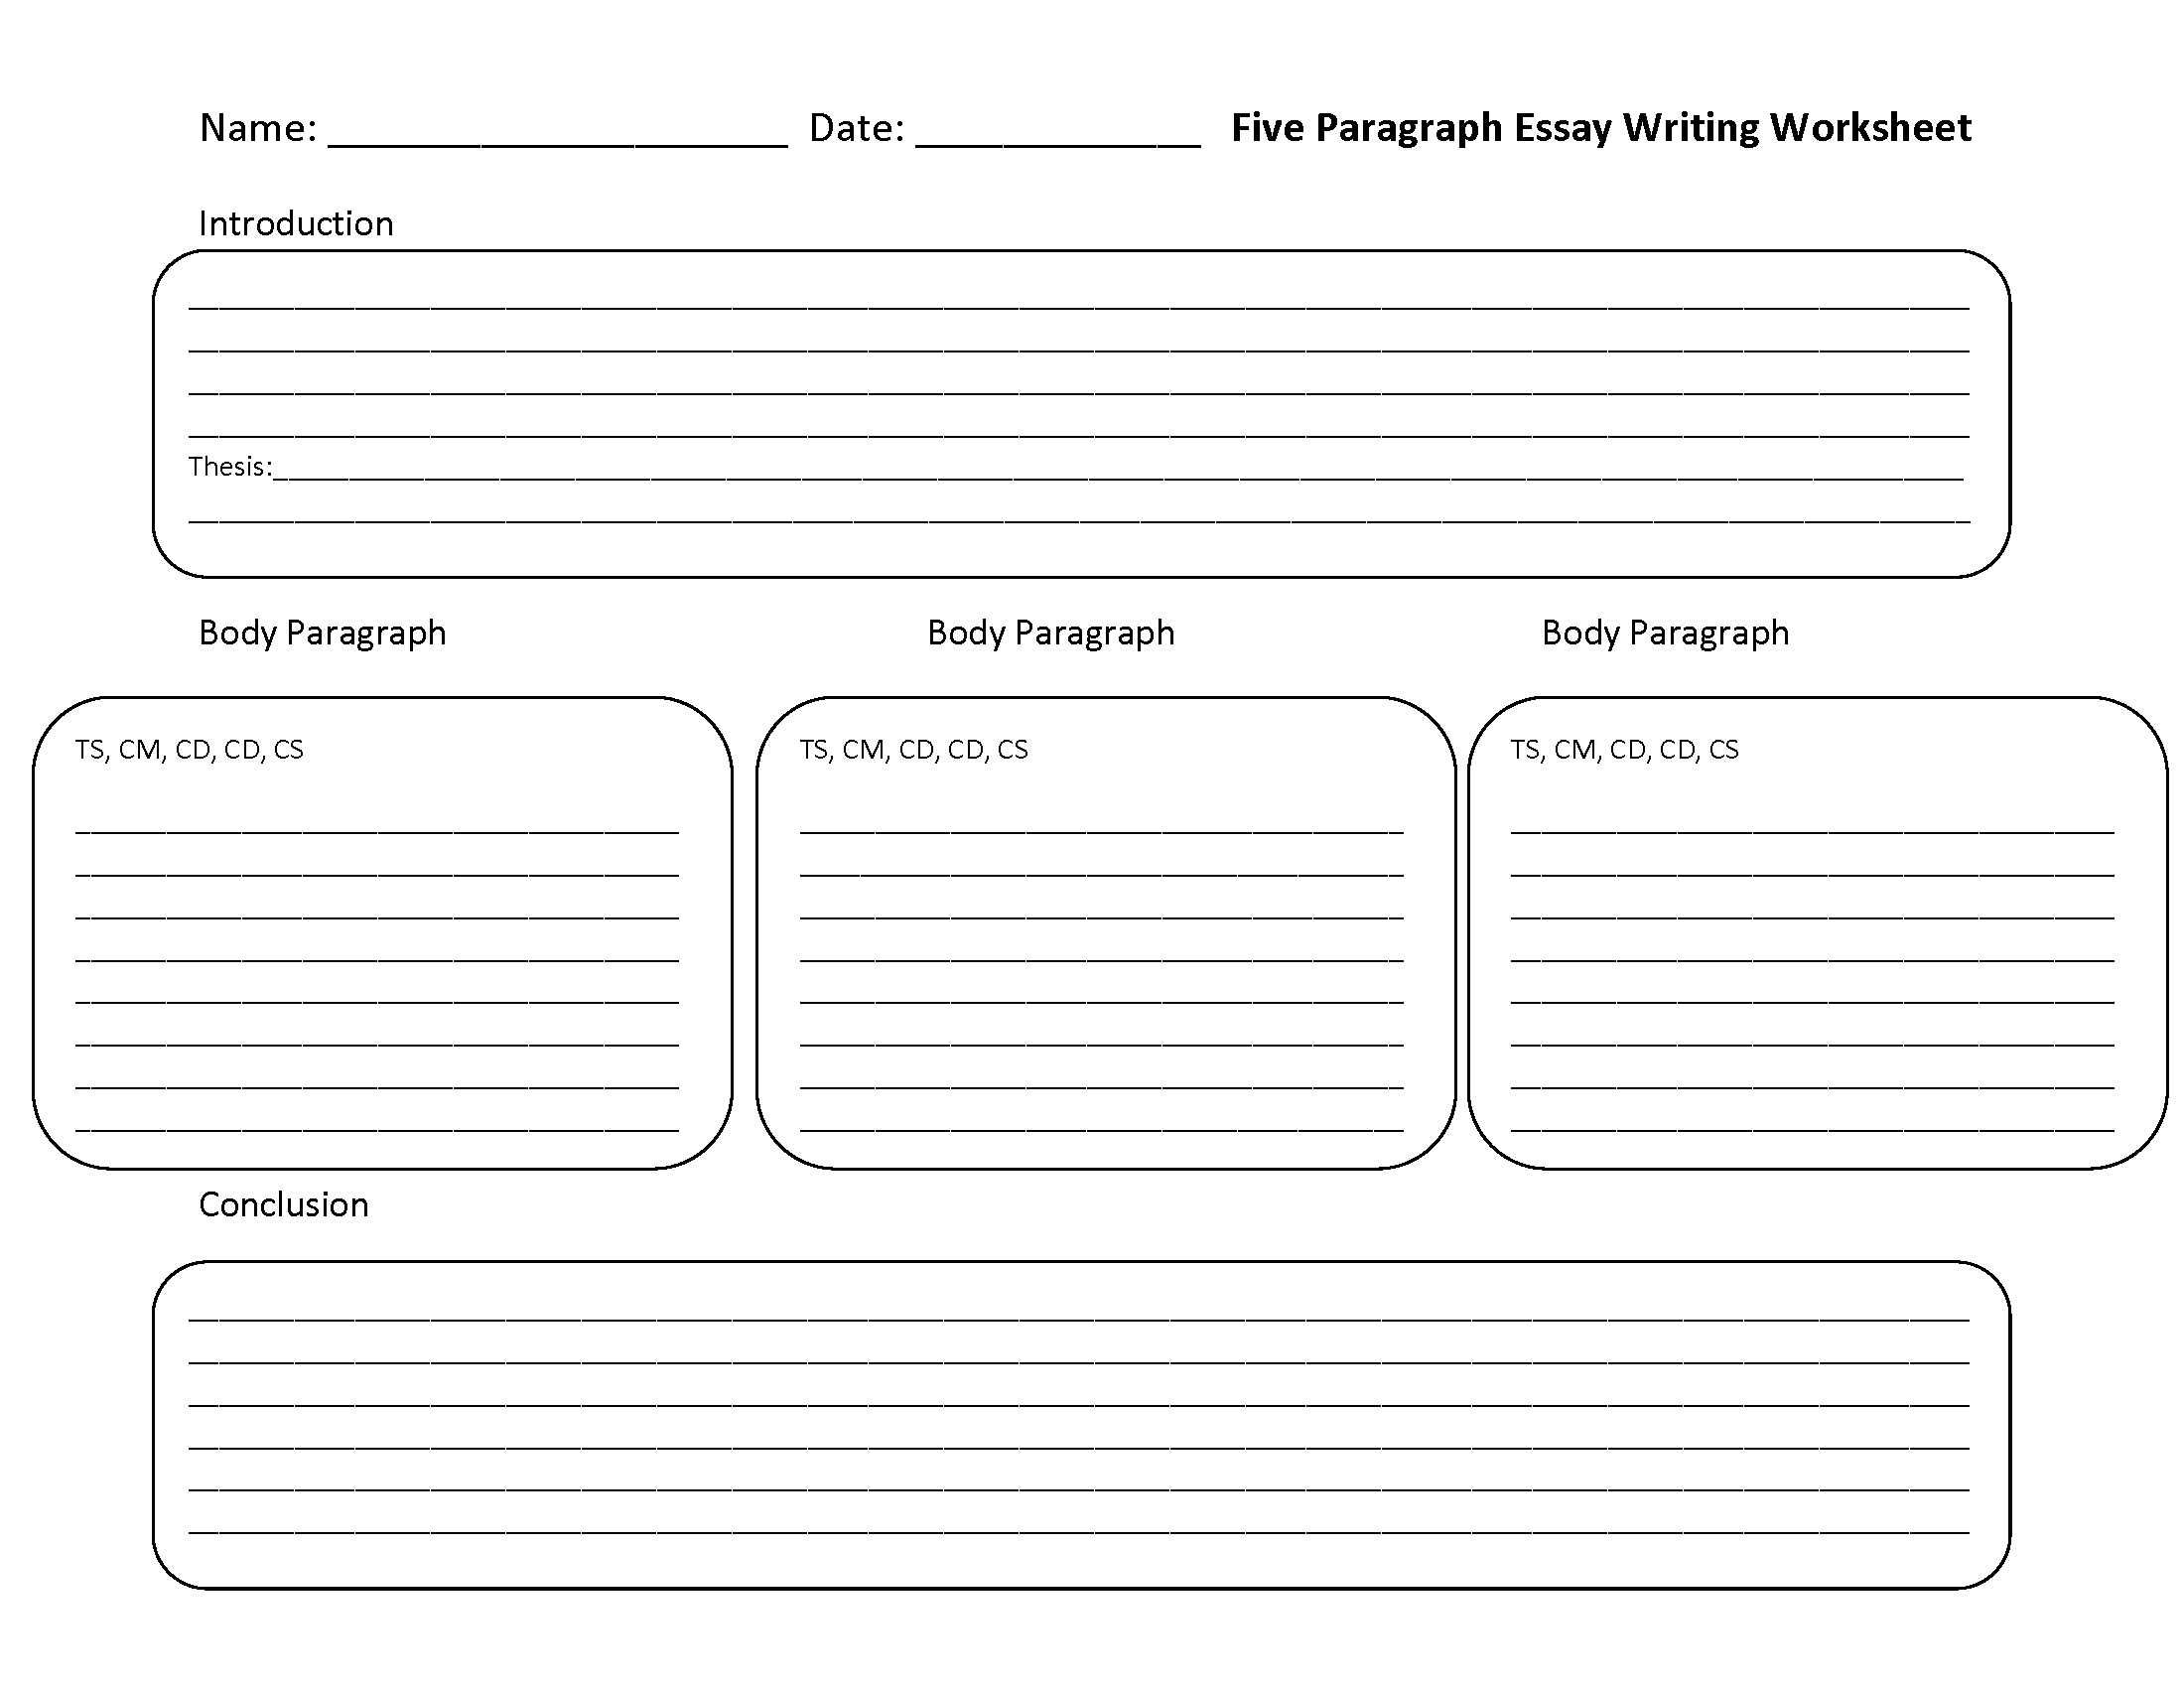 Free Printable Essay Writing Worksheets - Essay Writing Worksheets - Free Printable Writing Worksheets